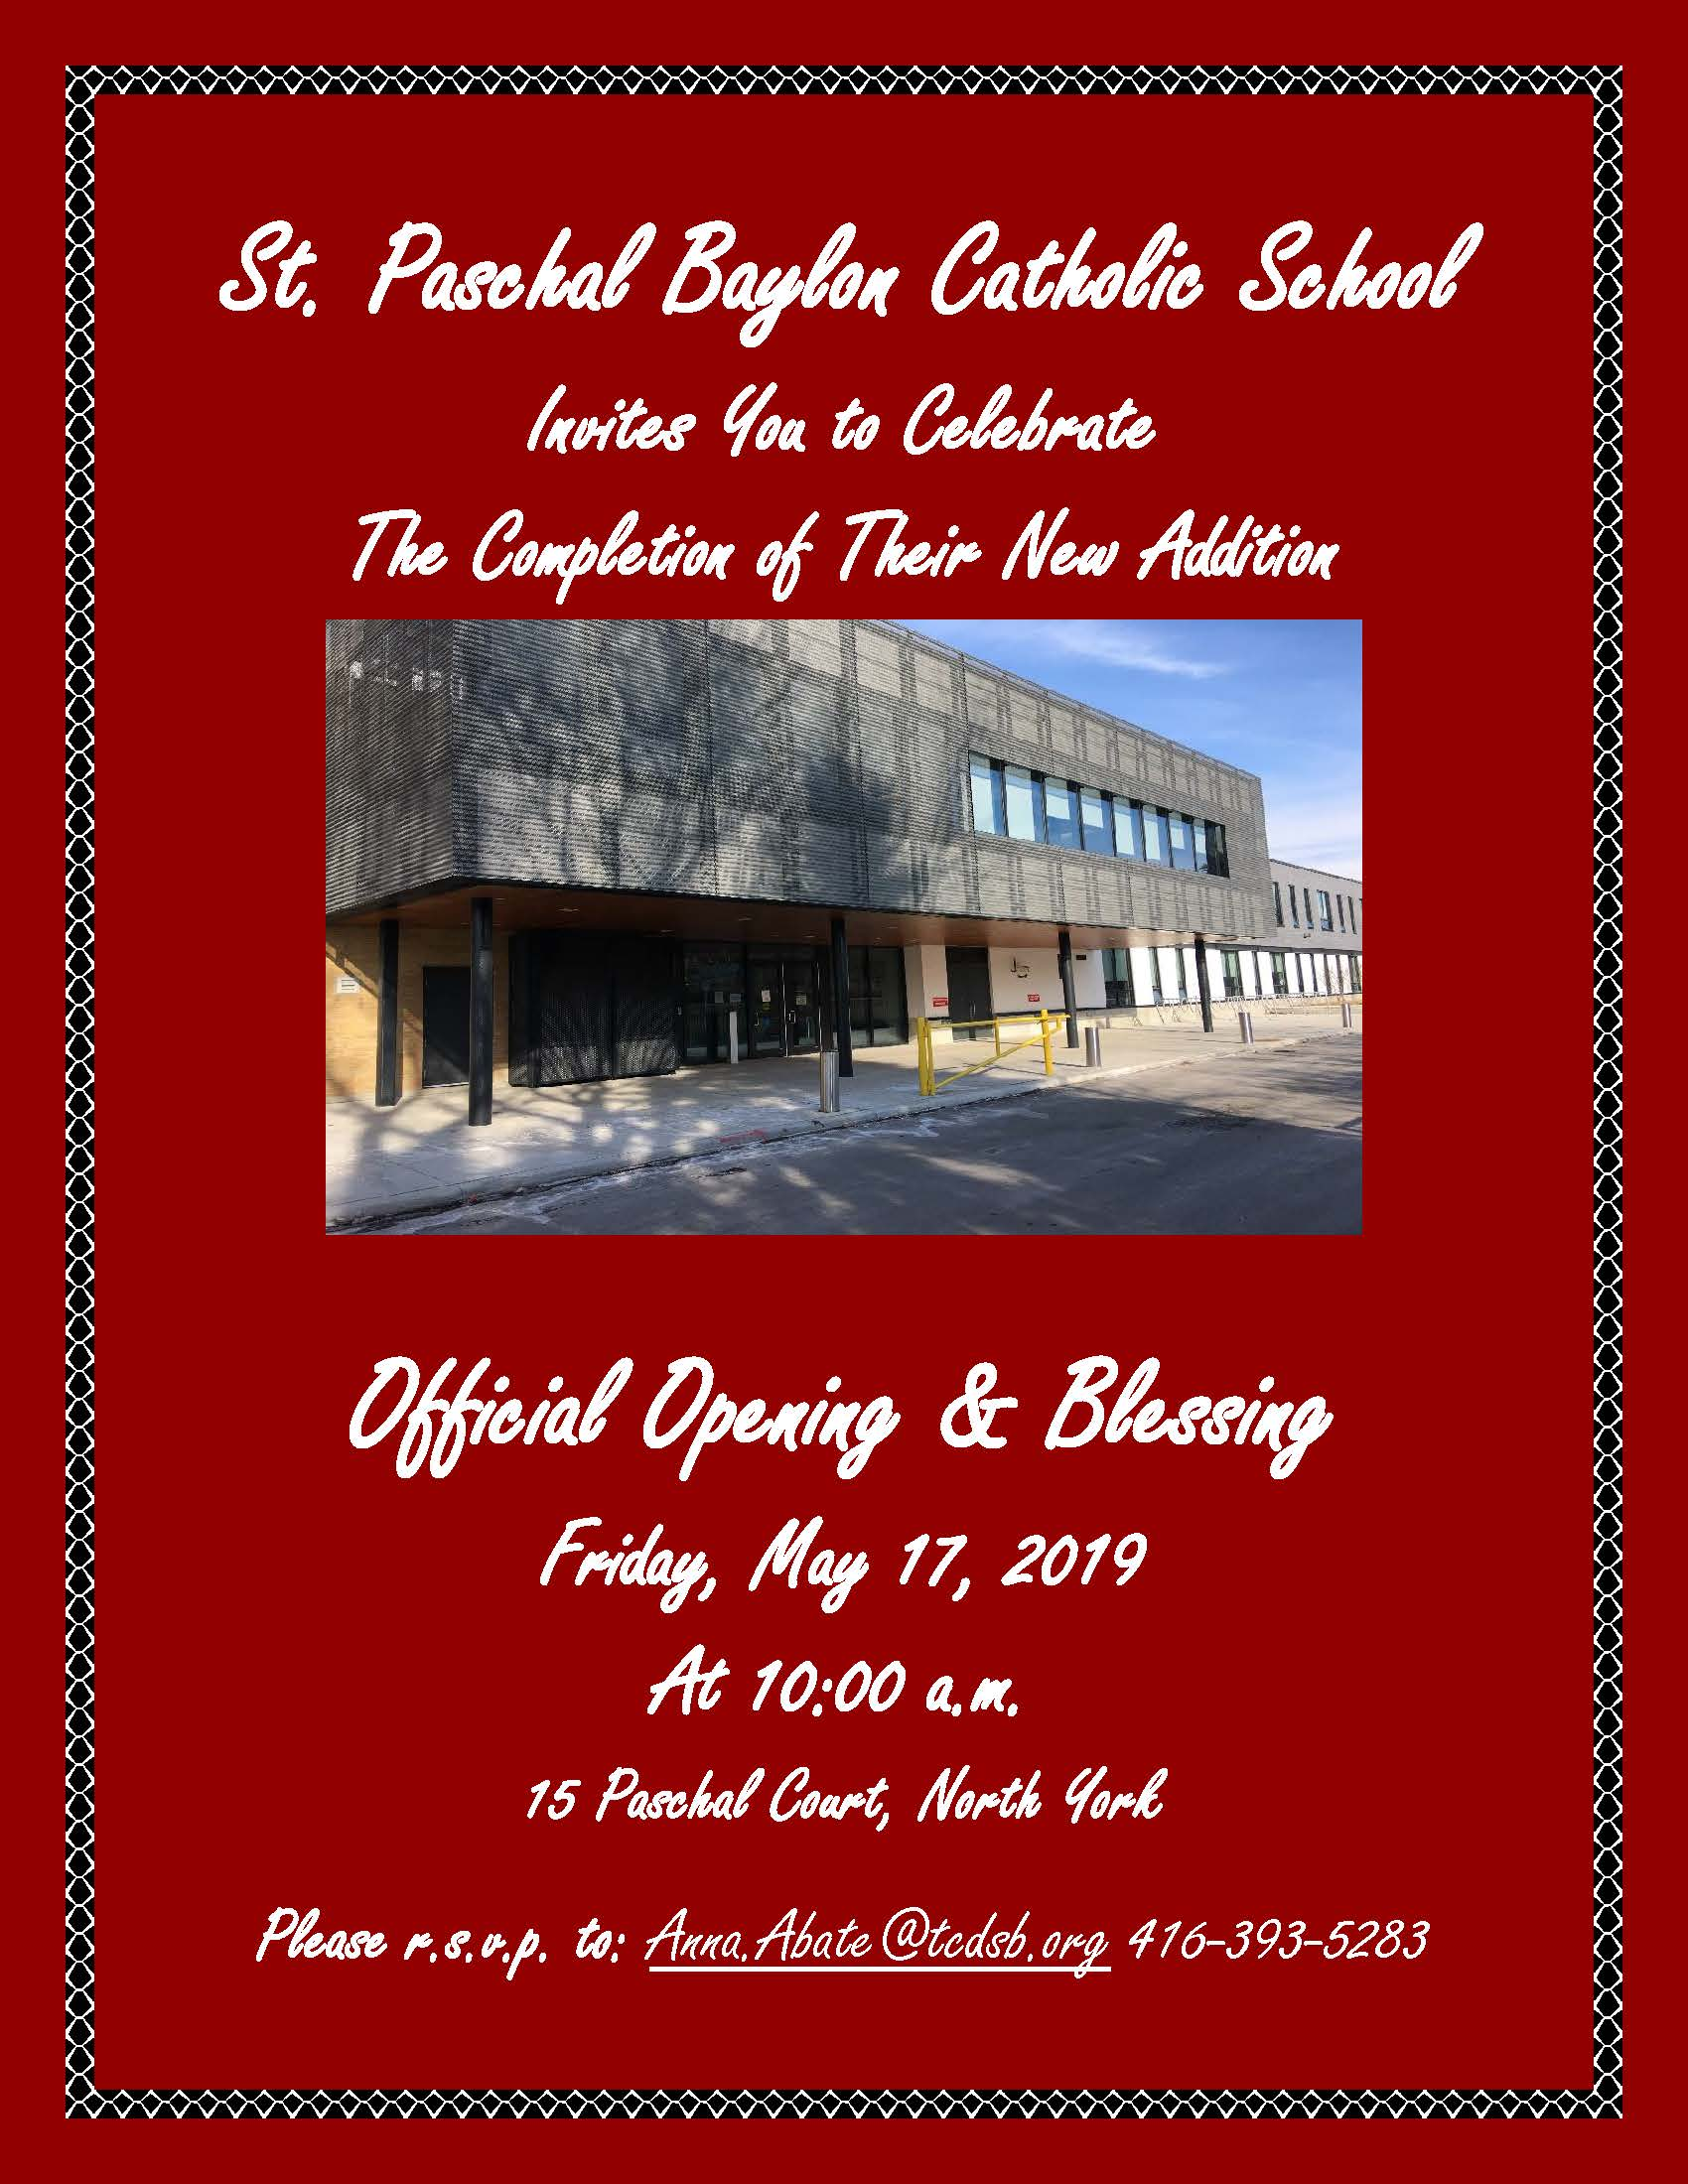 invitation to opening of addition at st paschal baylon january 2019 (2).jpg